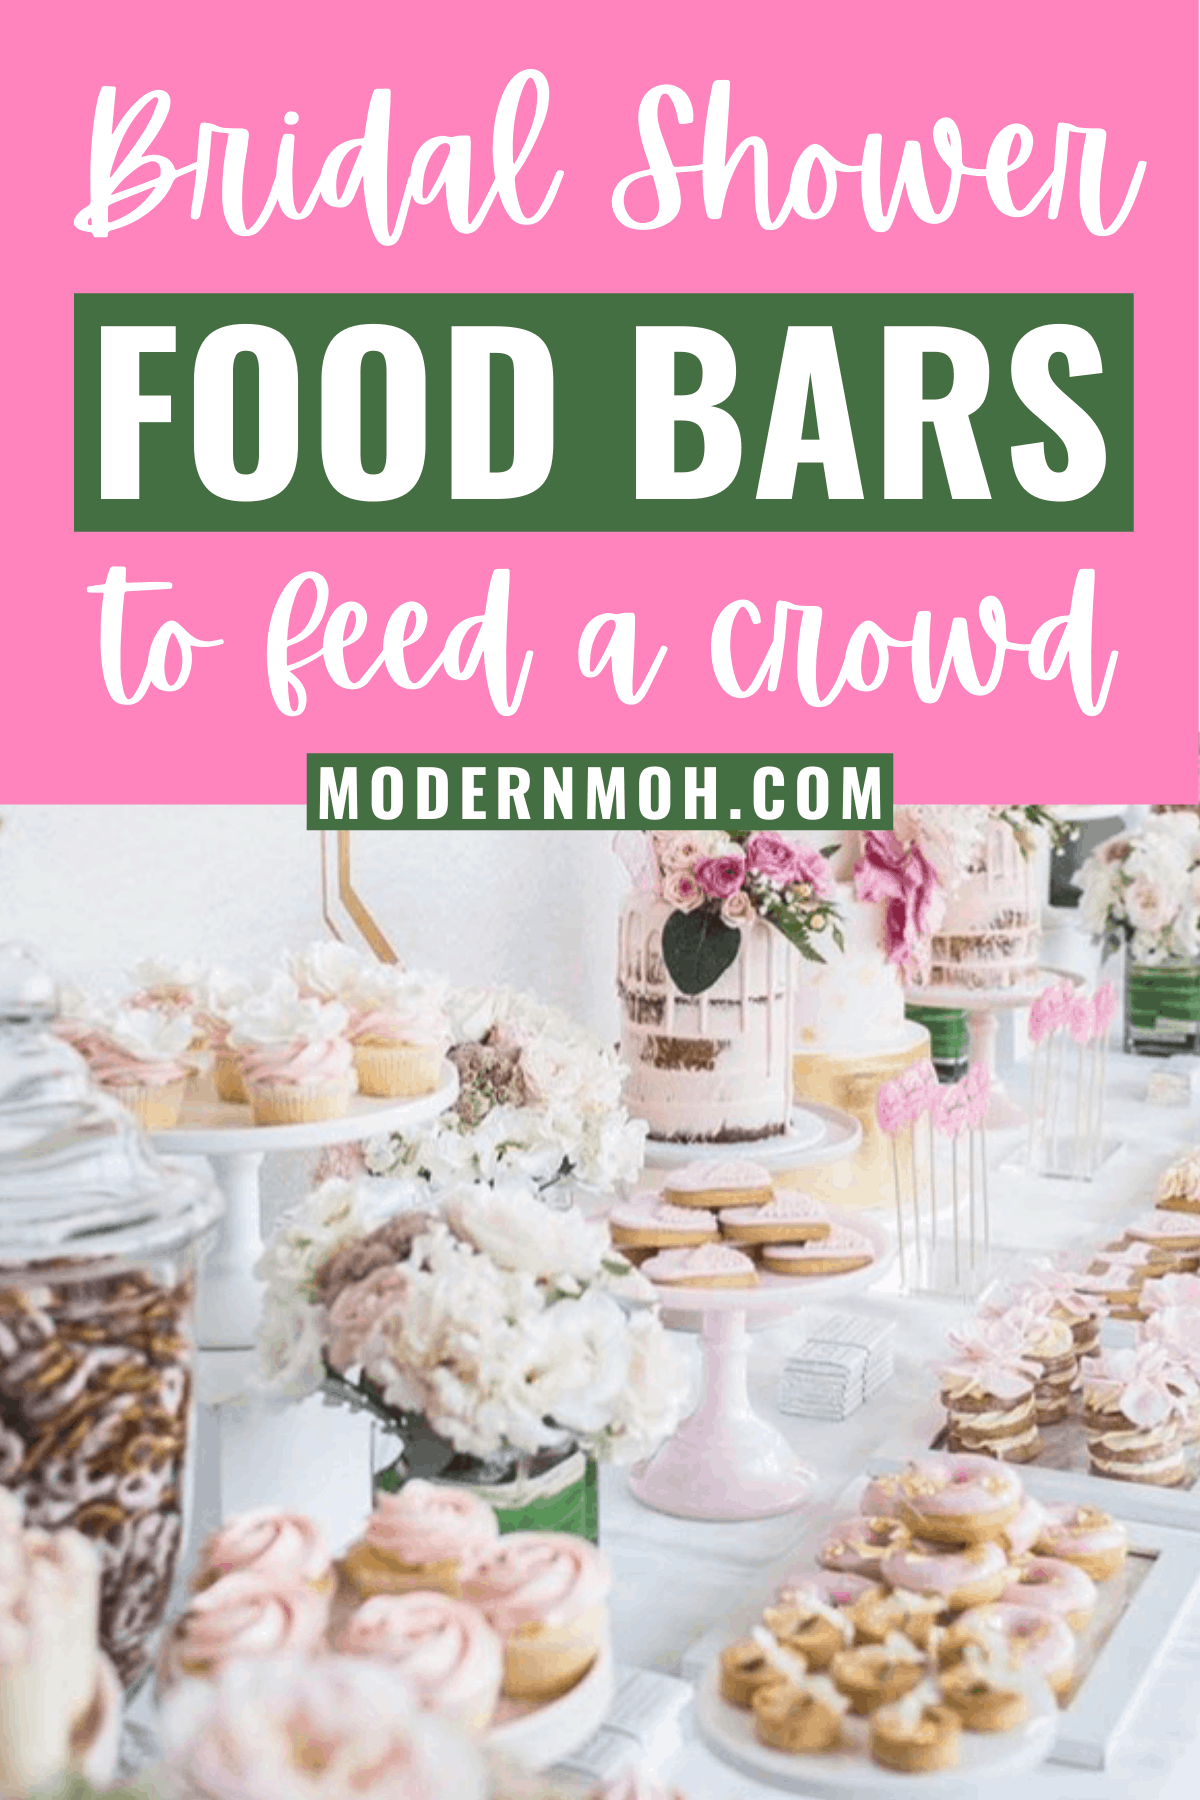 11 Delicious DIY Food Bars Perfect for Any Bridal Shower